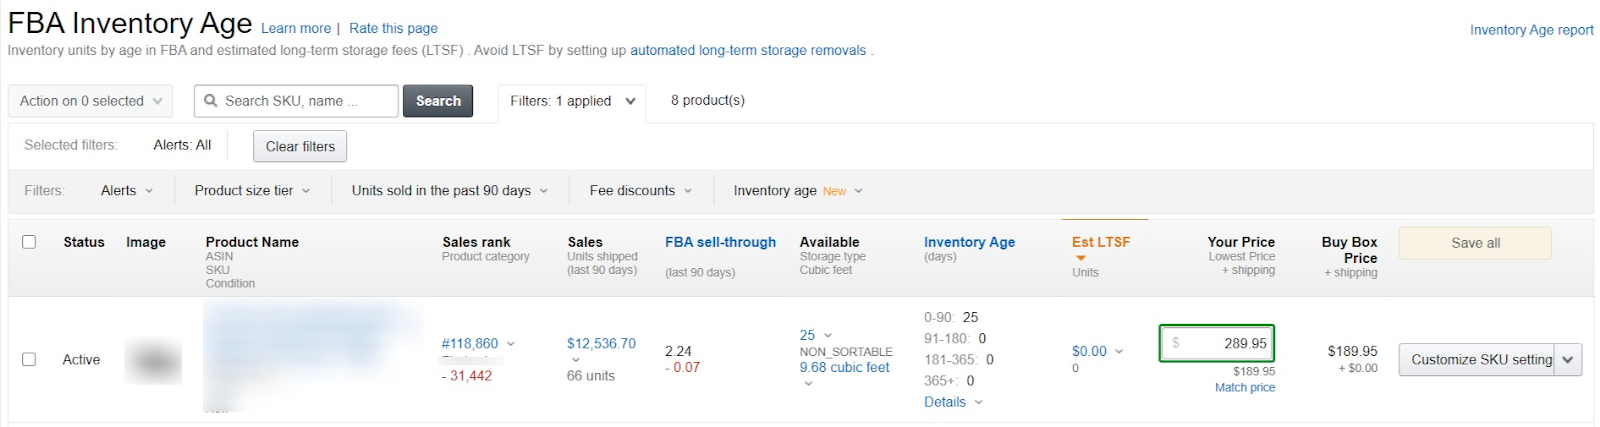 Inventory Age Dashboard